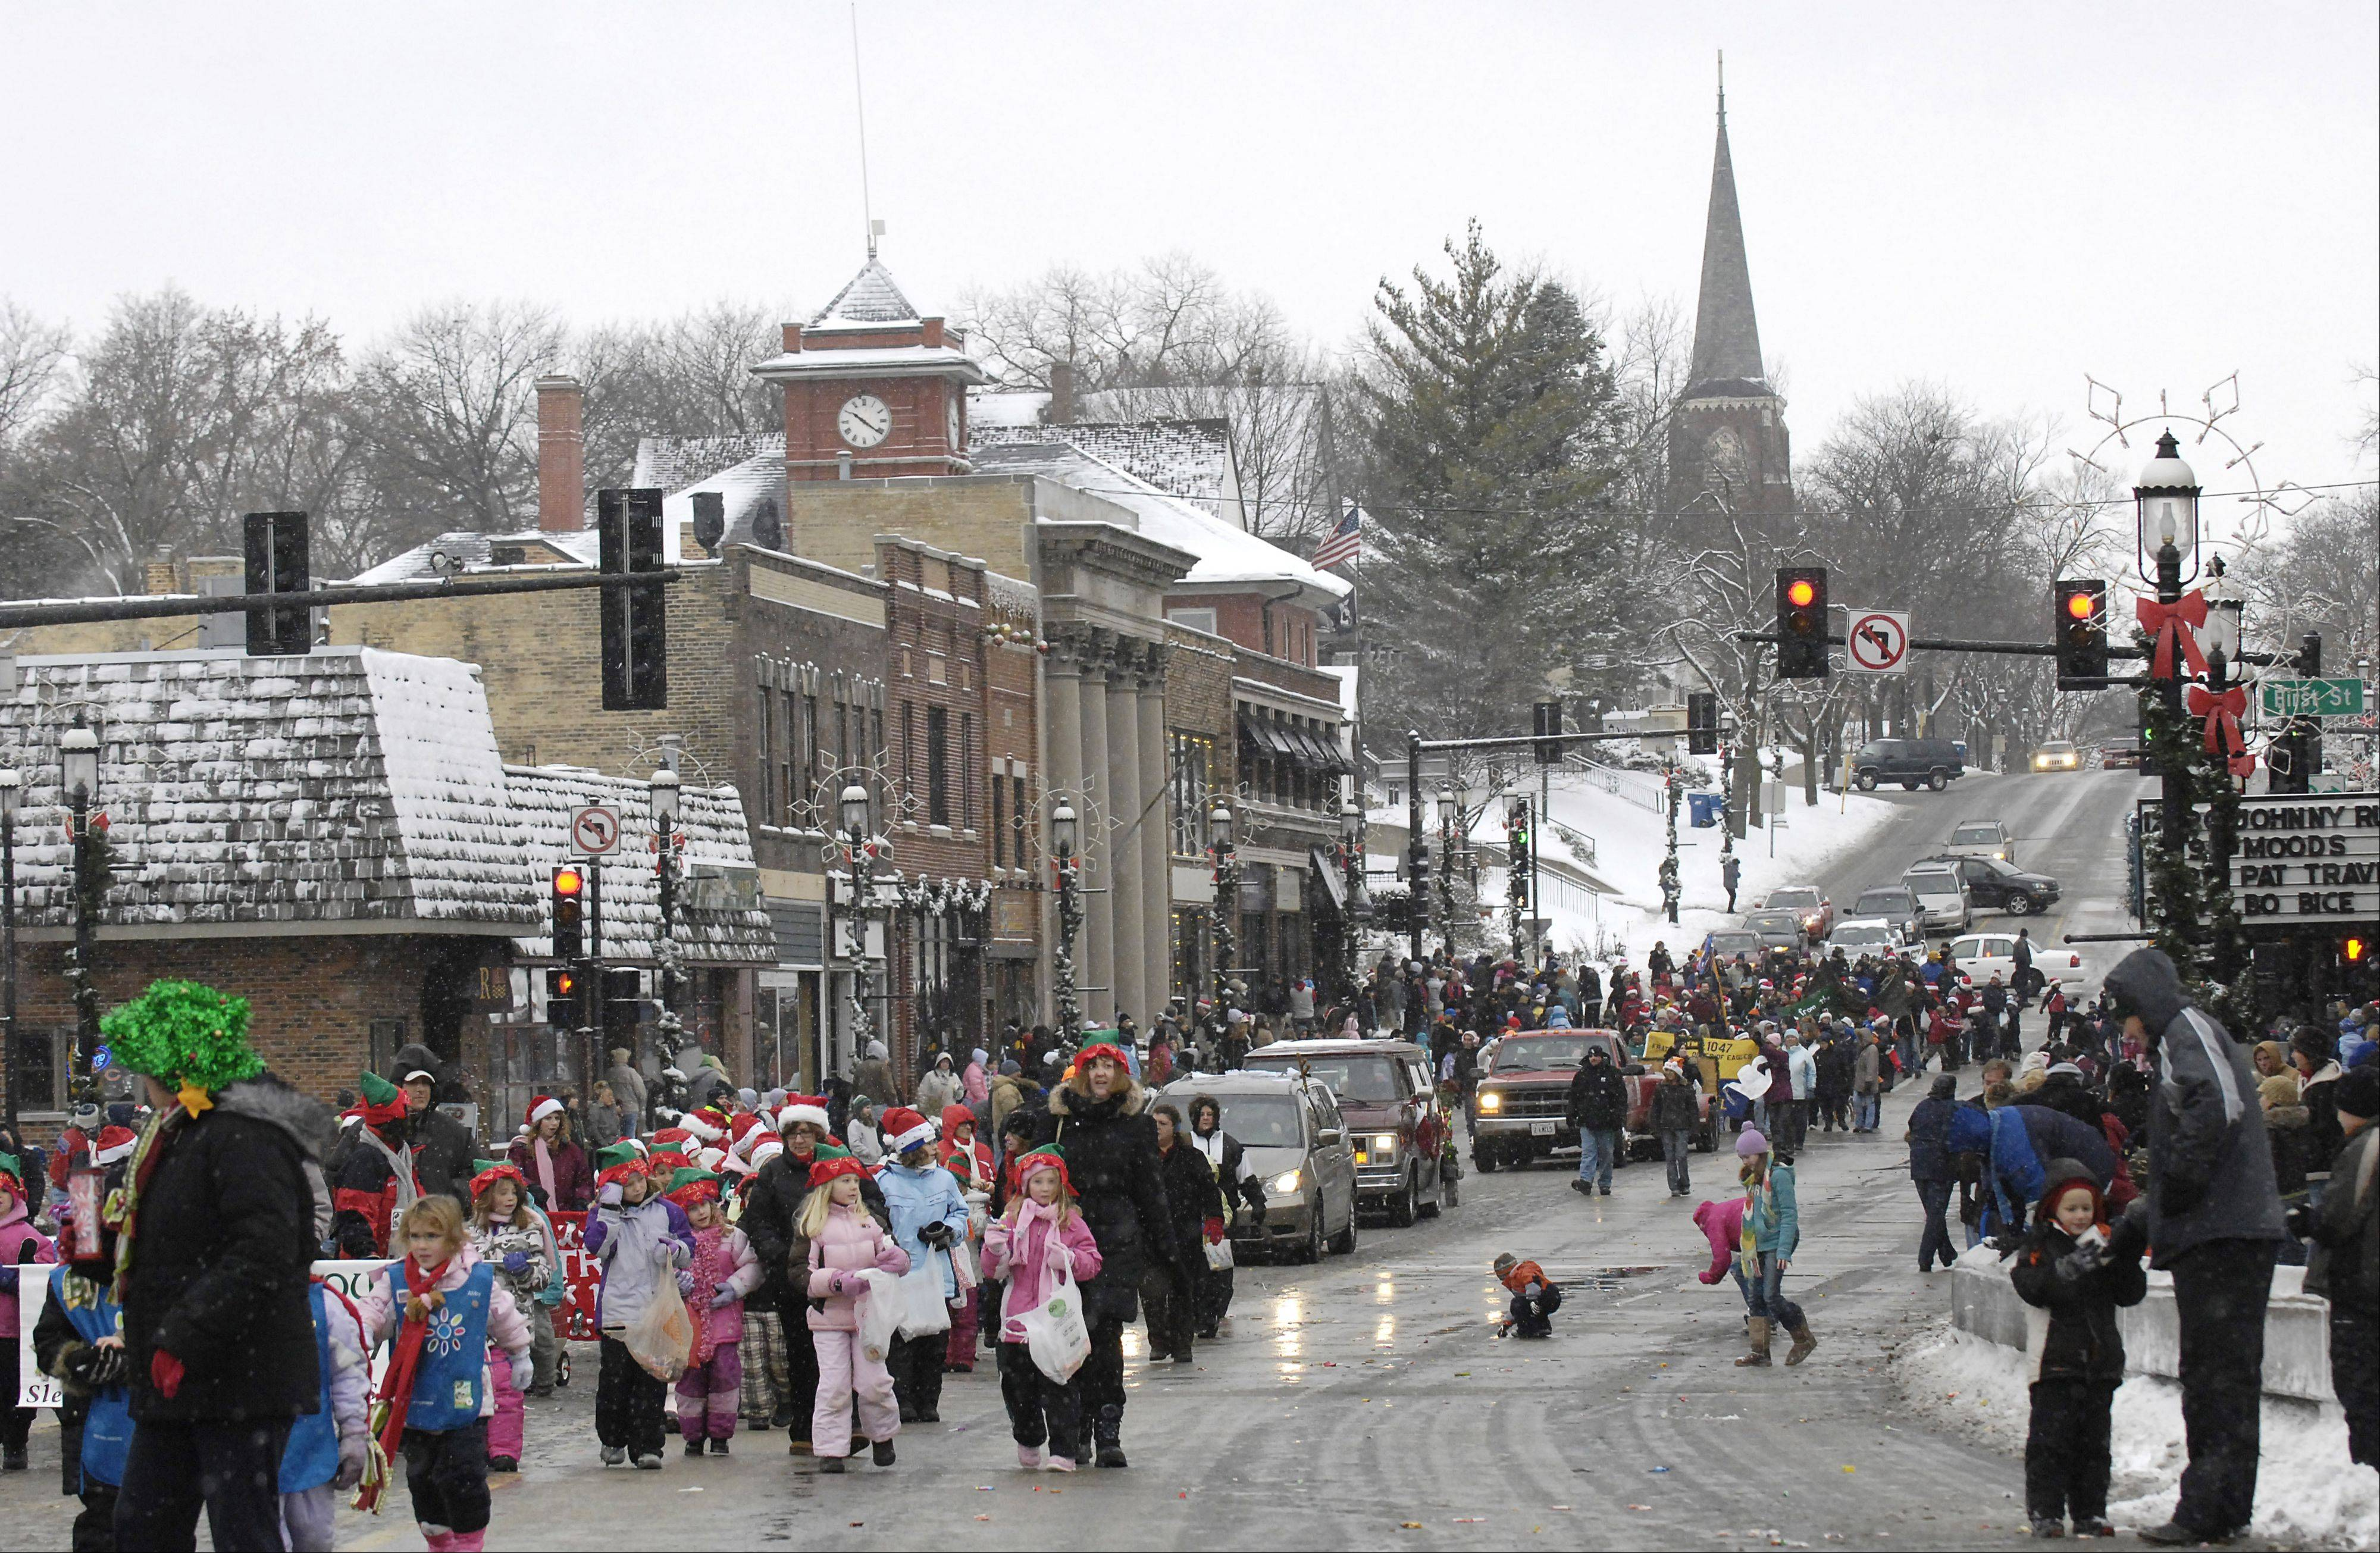 Girl Scout troops make their way down Main St. in downtown Dundee in the Spirit of Christmas parade at a previous Dickens in Dundee festival. This year will be the festival's 25th anniversary.